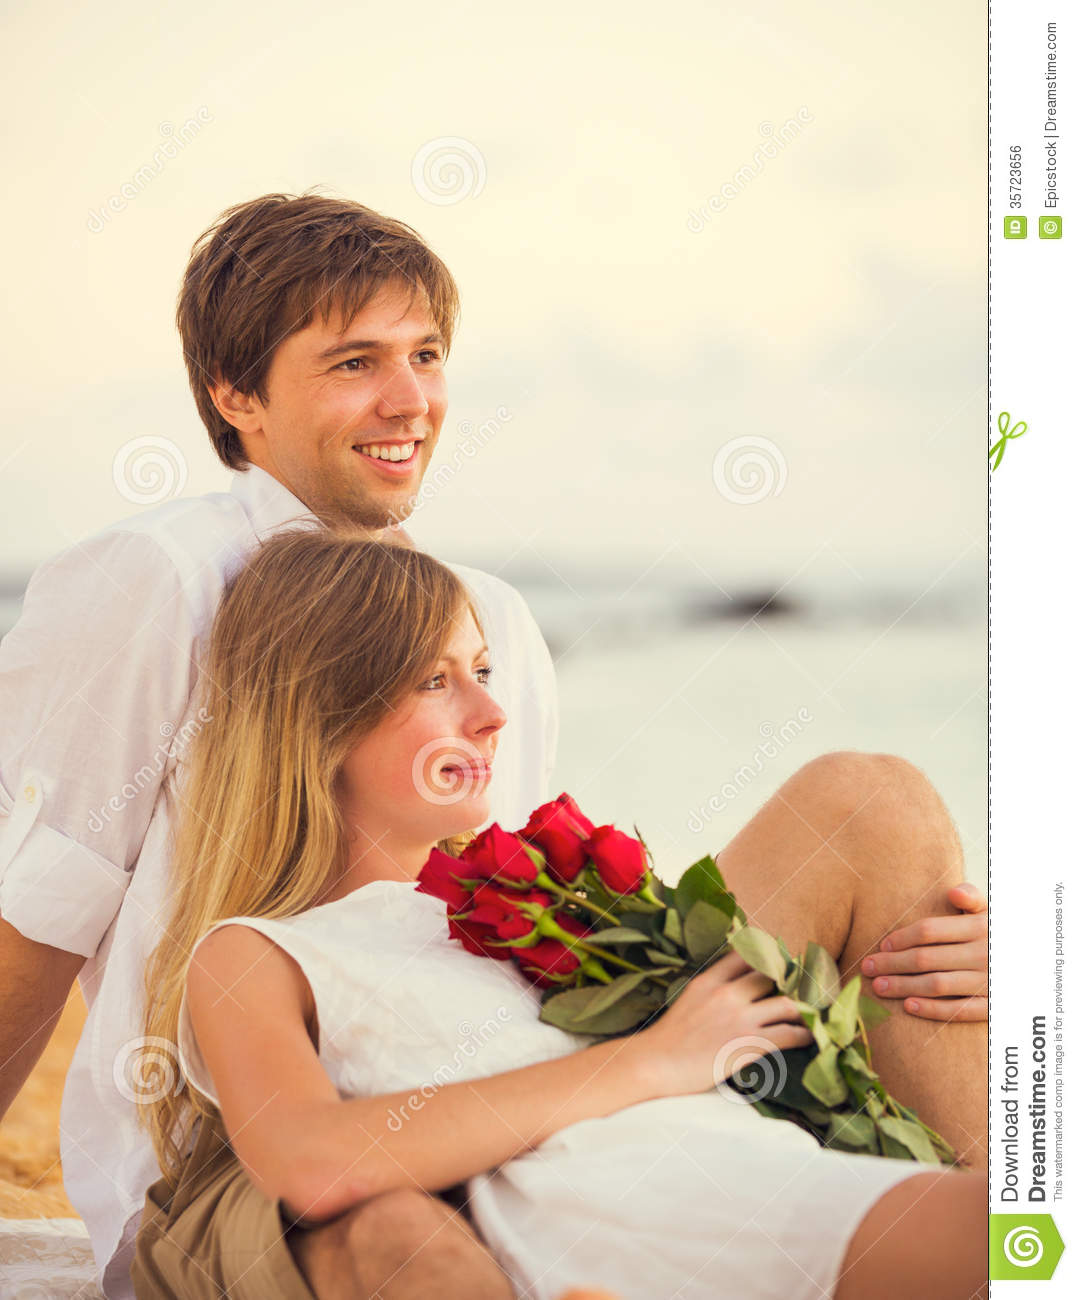 Young Couple In Love Stock Photo. Image Of Relationship